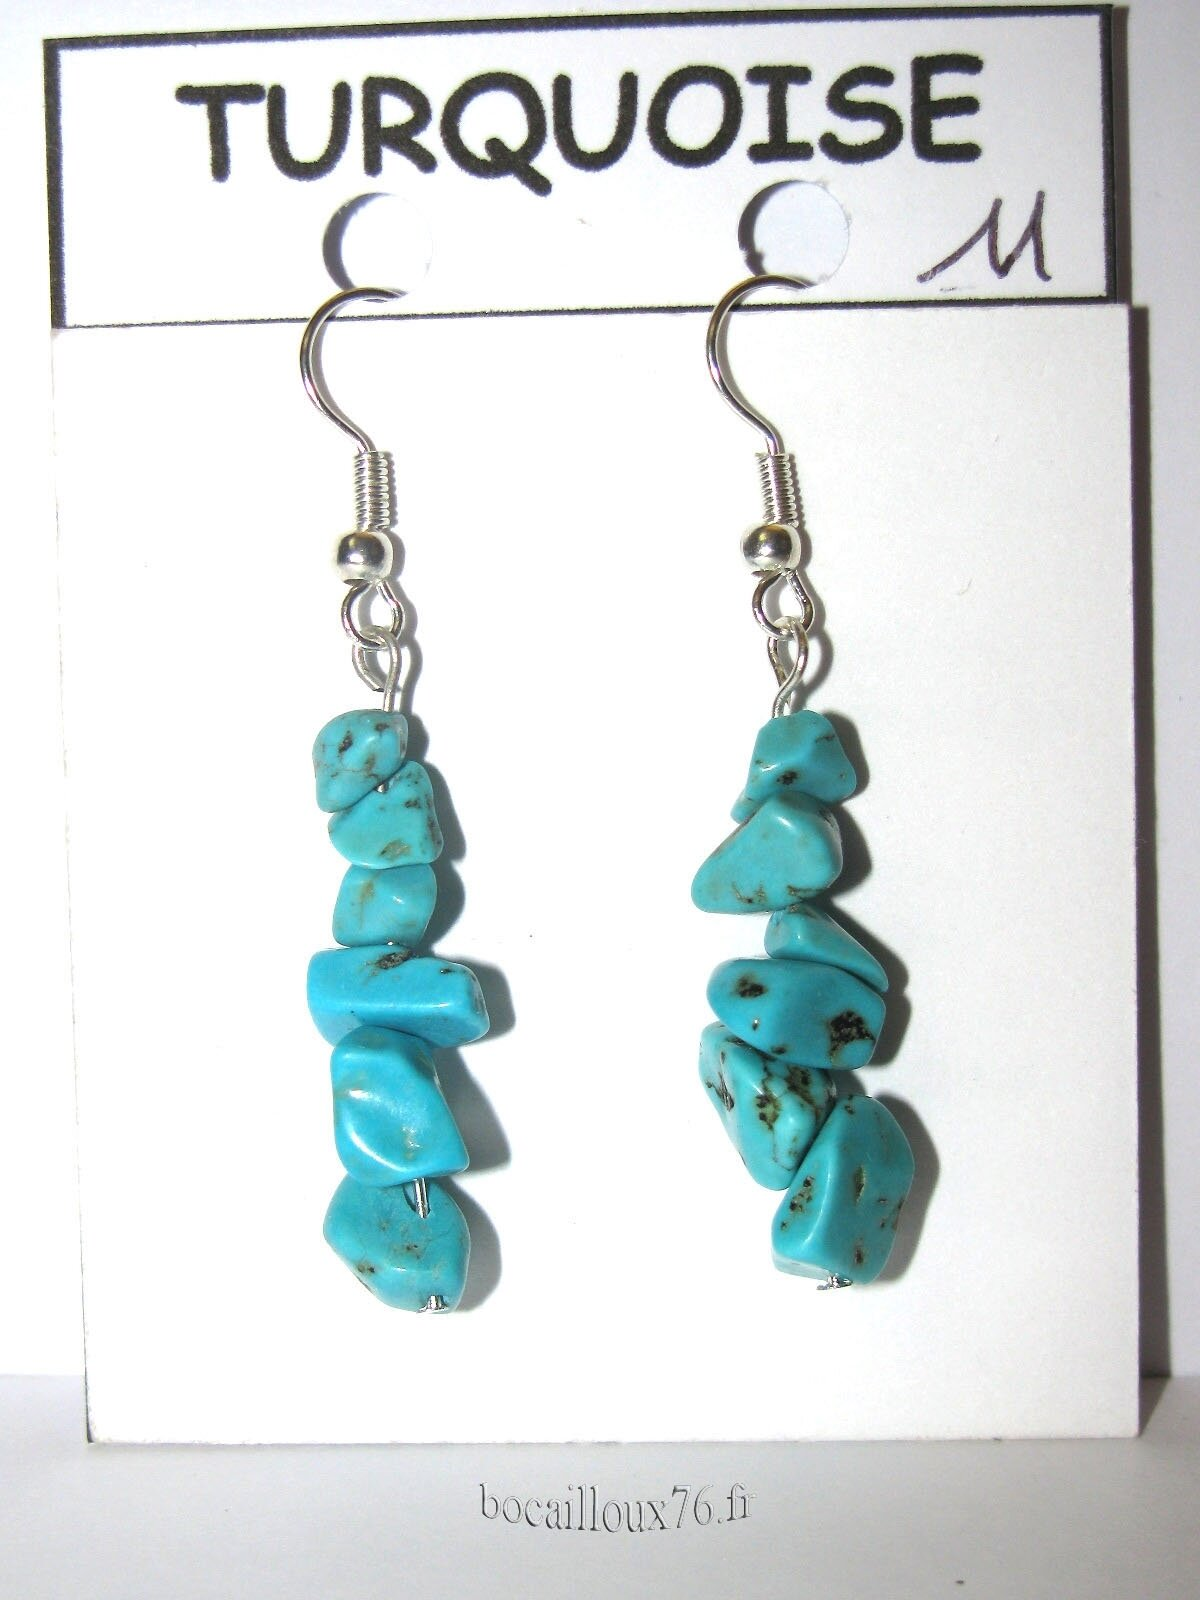 BOUCLE OREILLE TURQUOISE 11 CHIPS - CROCHETS ARGENTES